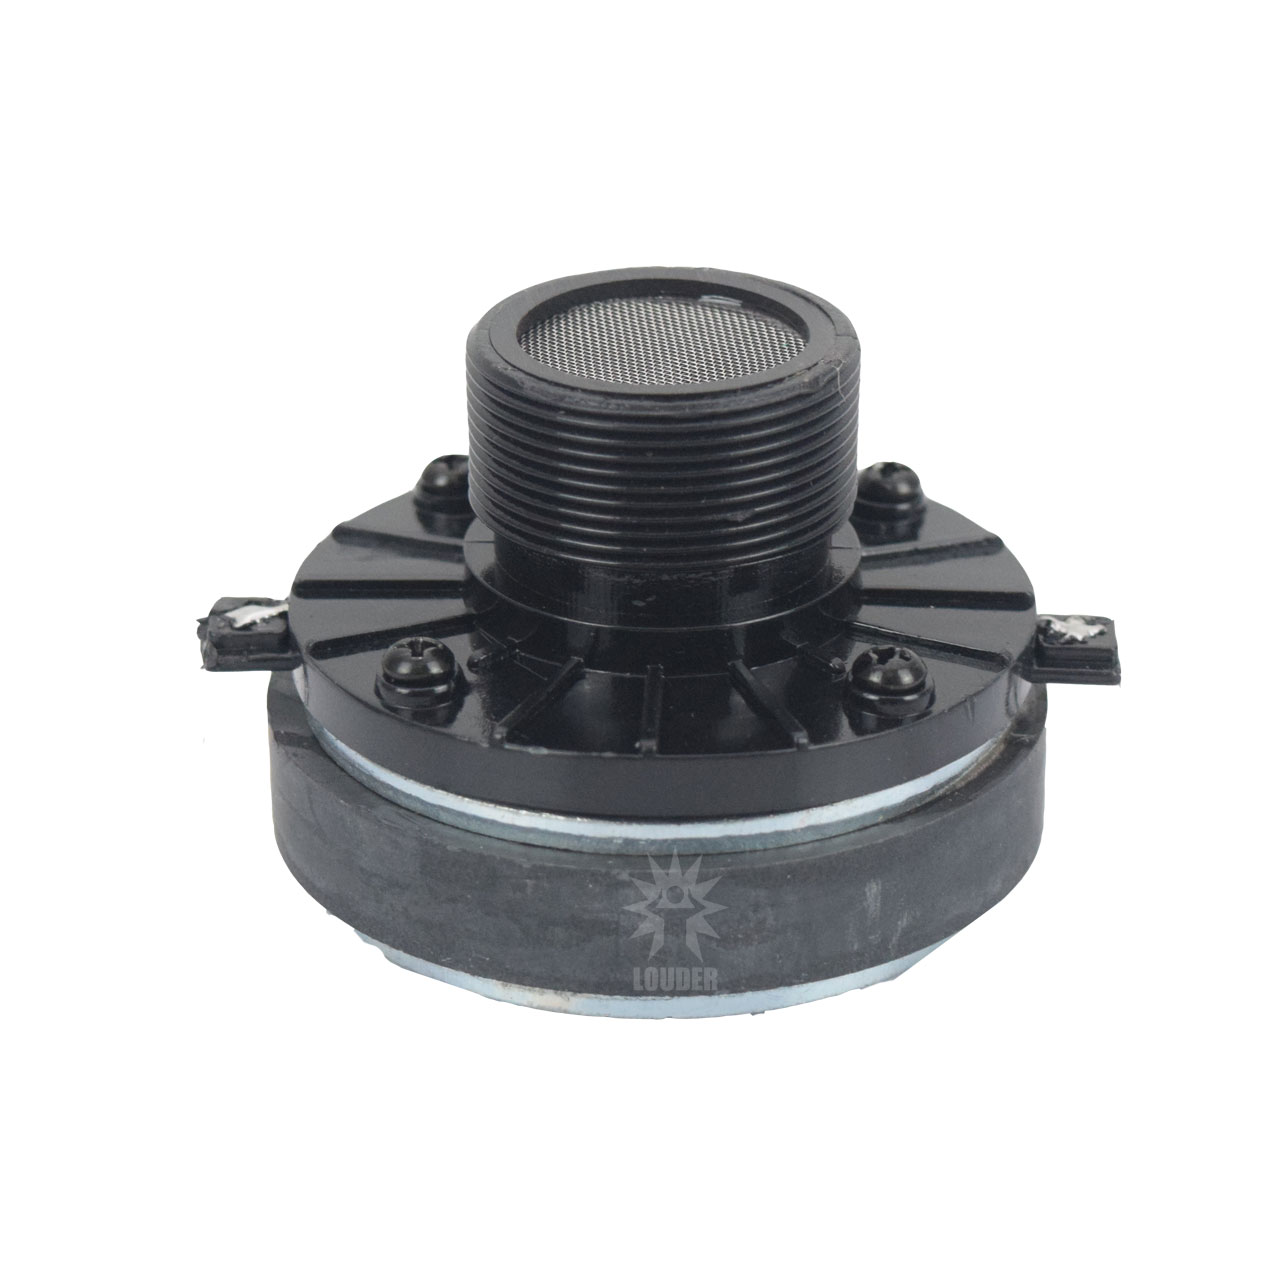 PTW25 Tweeter Driver 25mm 20w RMS